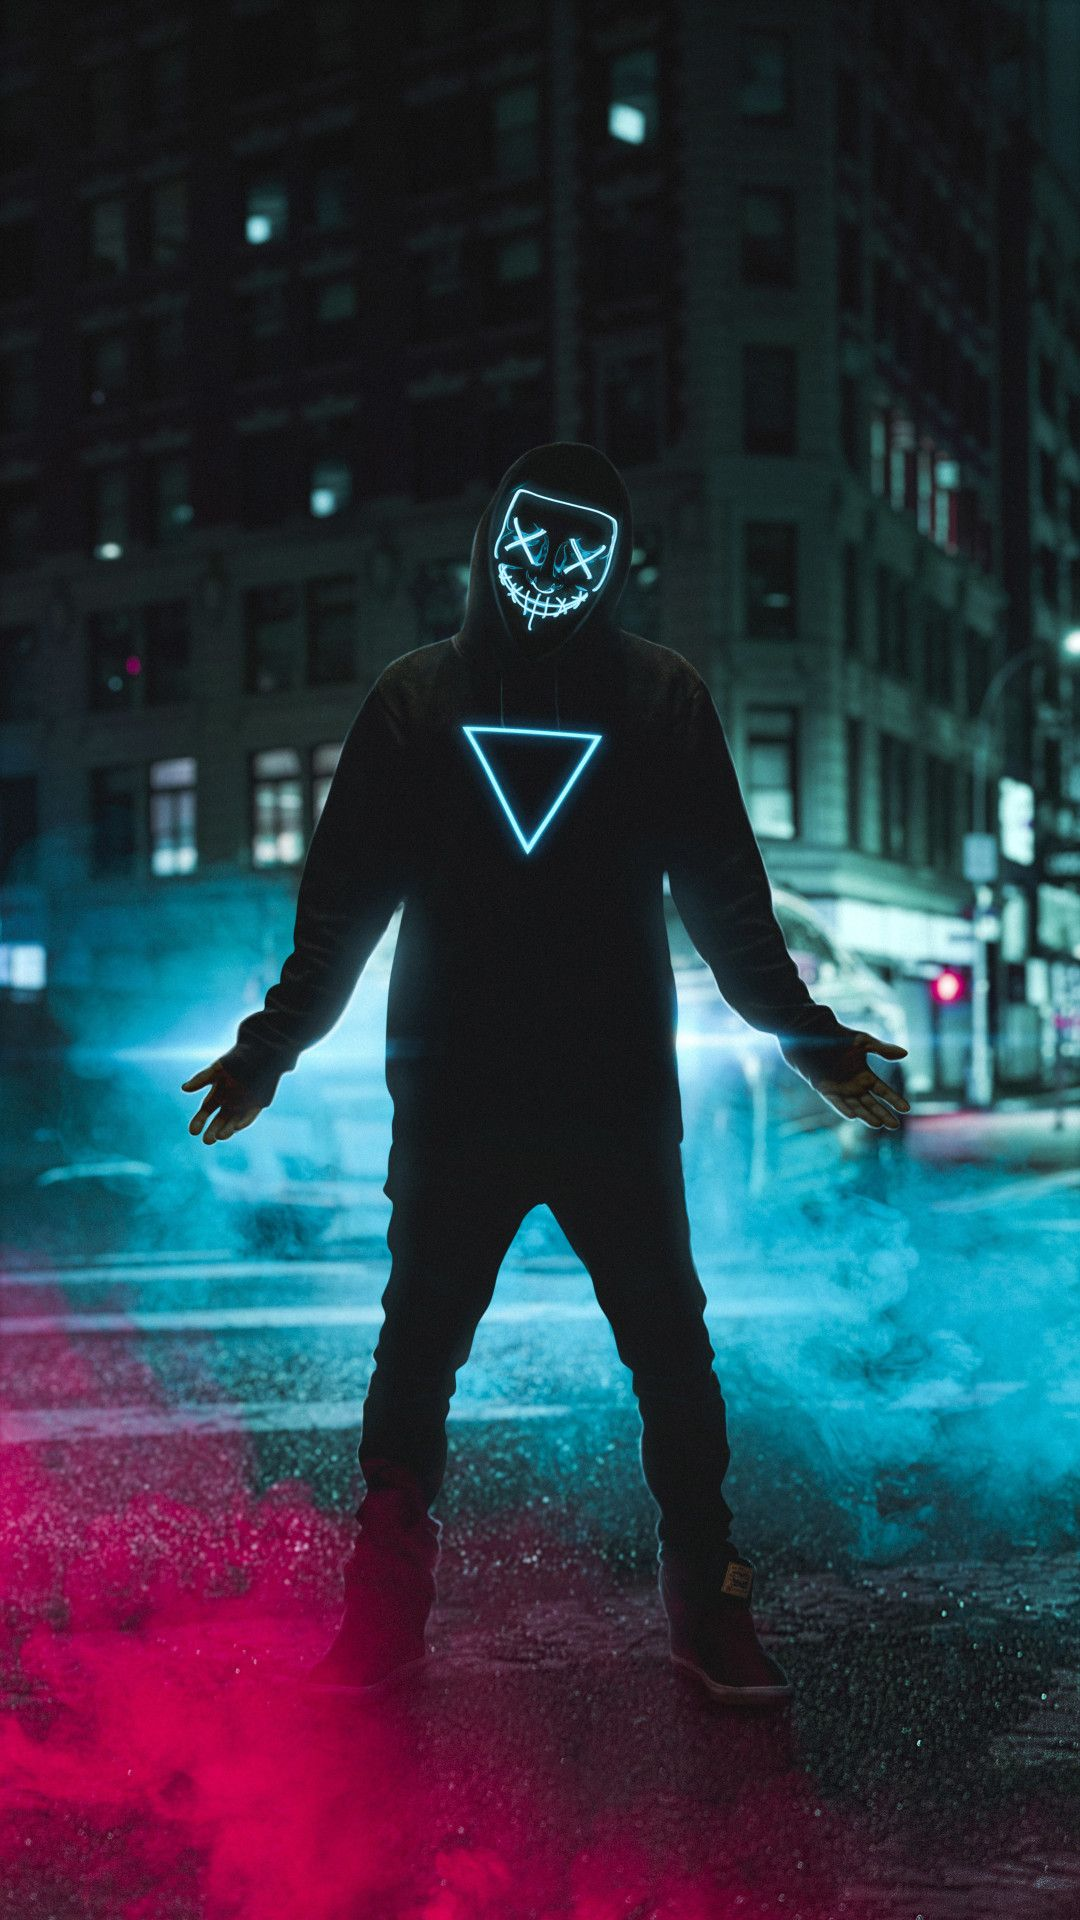 Neon Mask Boy 4k Mobile Wallpaper Iphone Android Samsung Pixel Xiaomi In 2020 With Images Hipster Wallpaper Neon Wallpaper Iphone Wallpaper